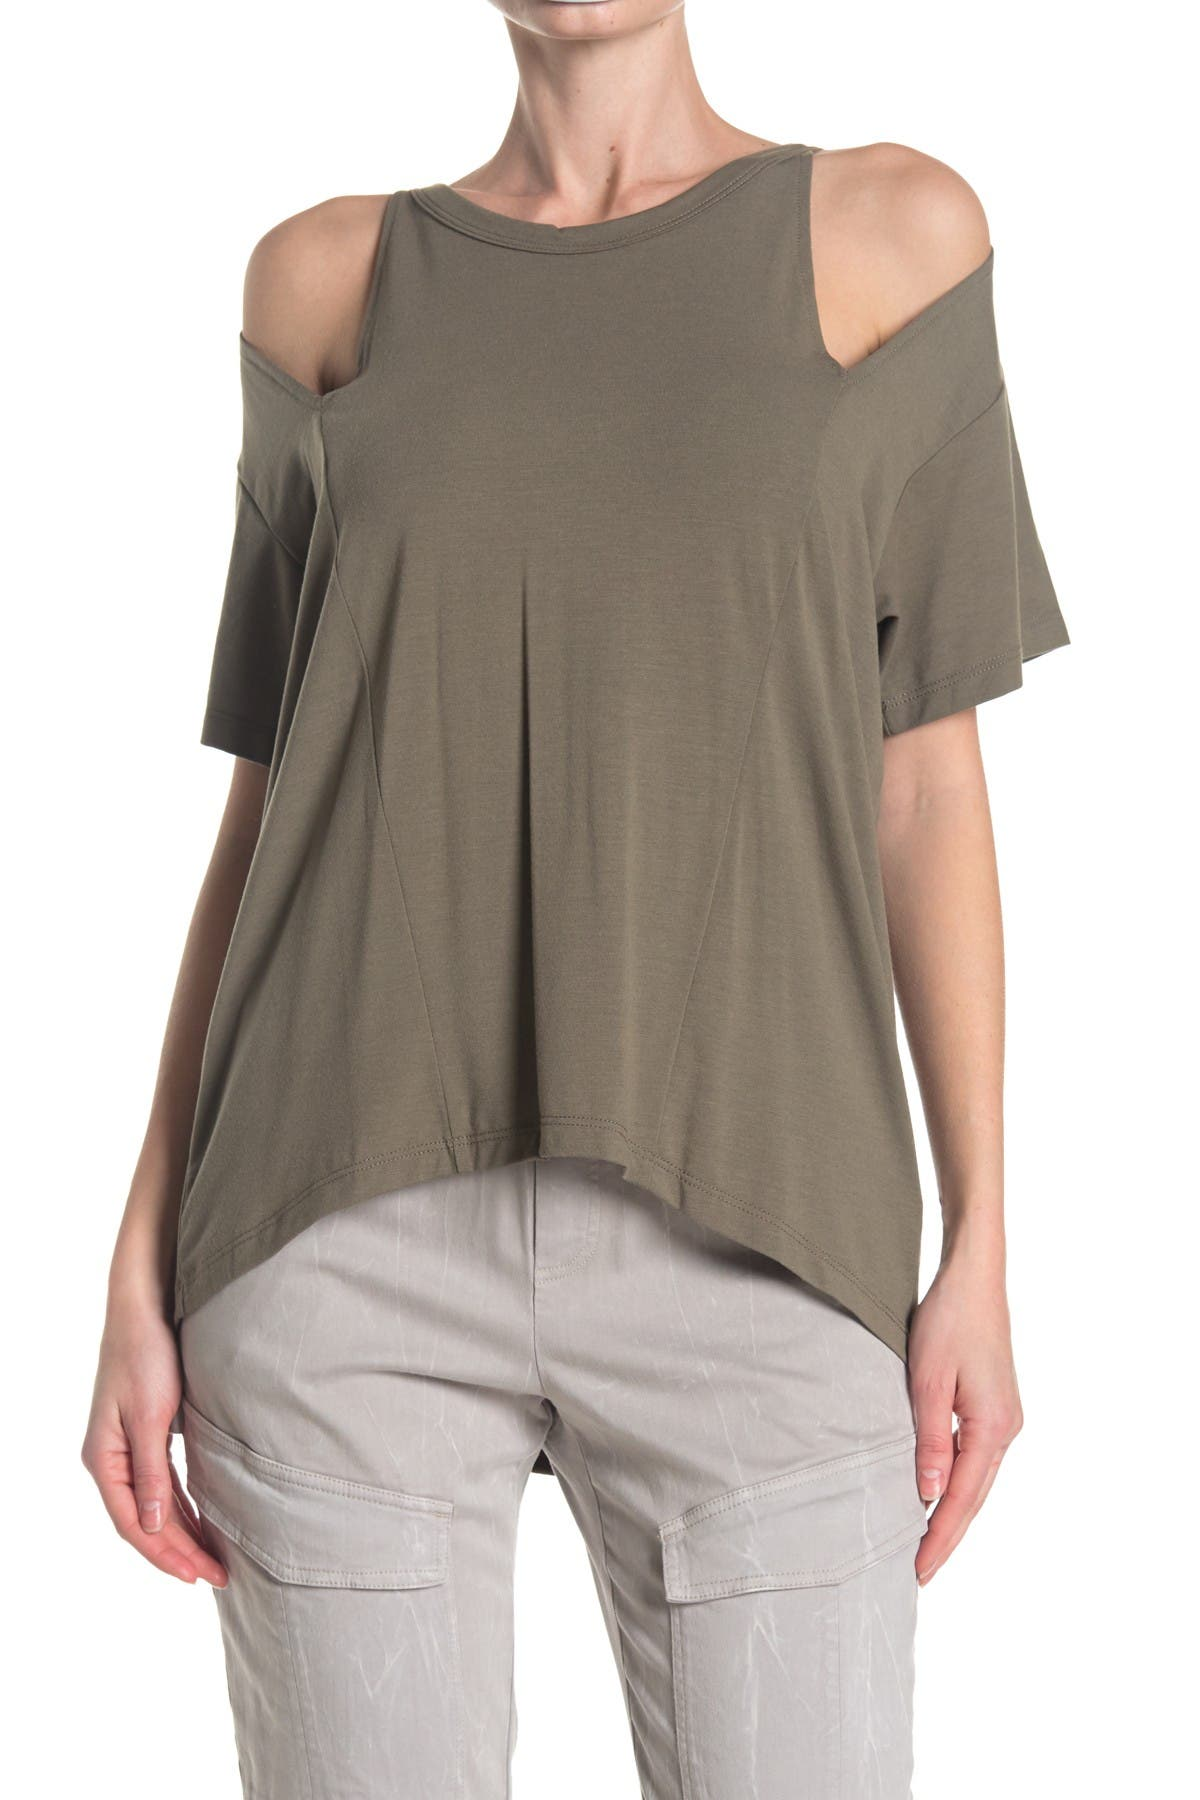 Image of LNA Short Sleeve Slice Top